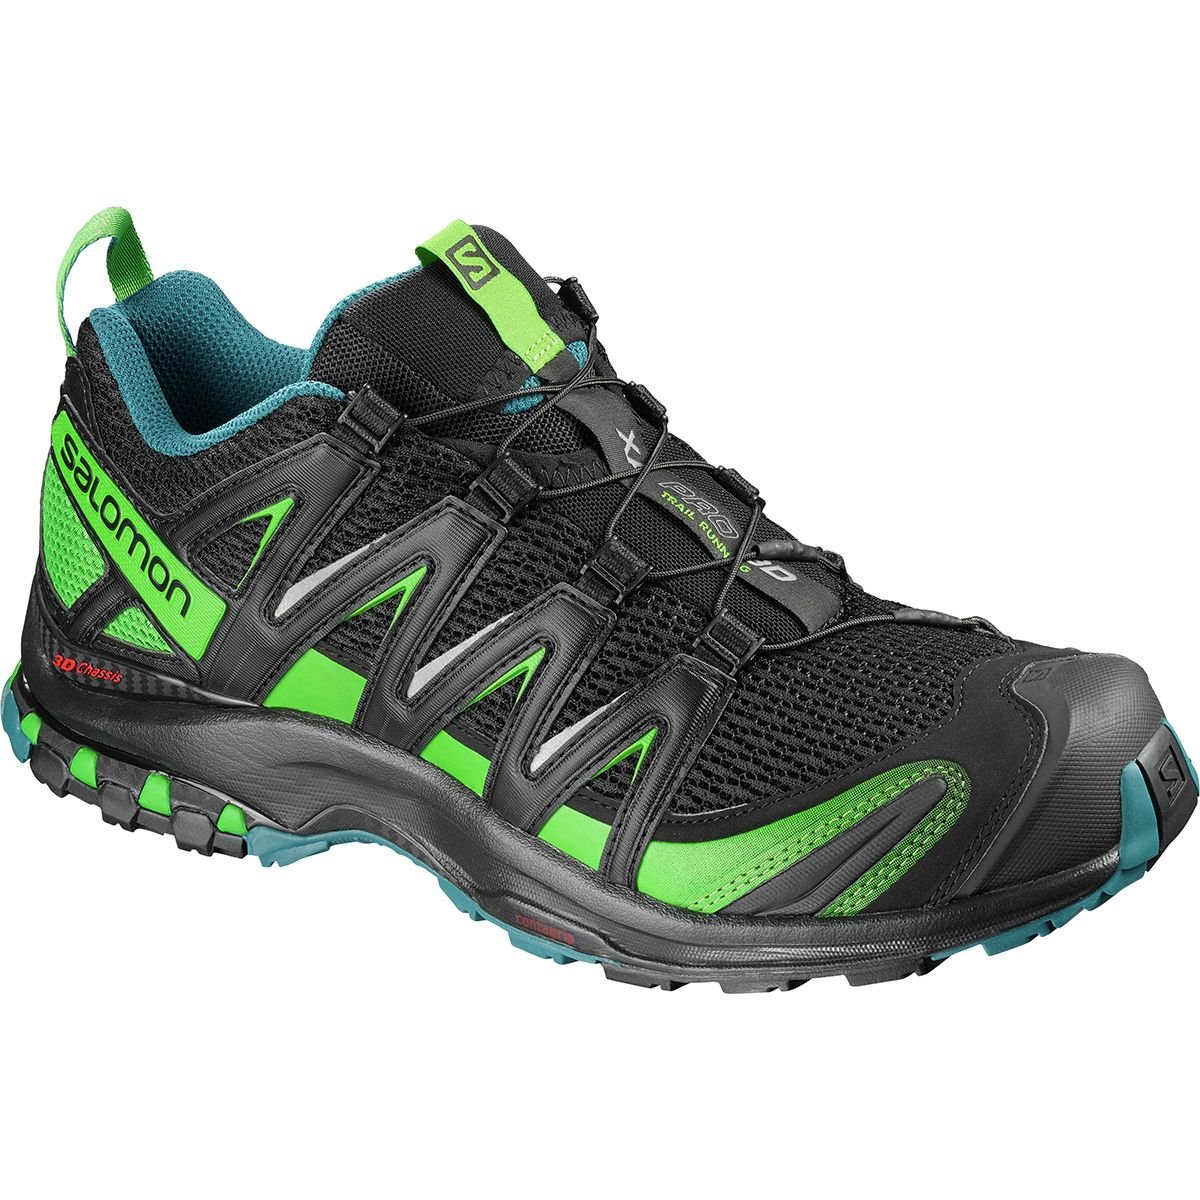 Salomon Men's XA Pro 3D Wide Trail-Runners B07CZX8K5D 14 D(M) US|Black/Deep Lagoon/Onlime Lime